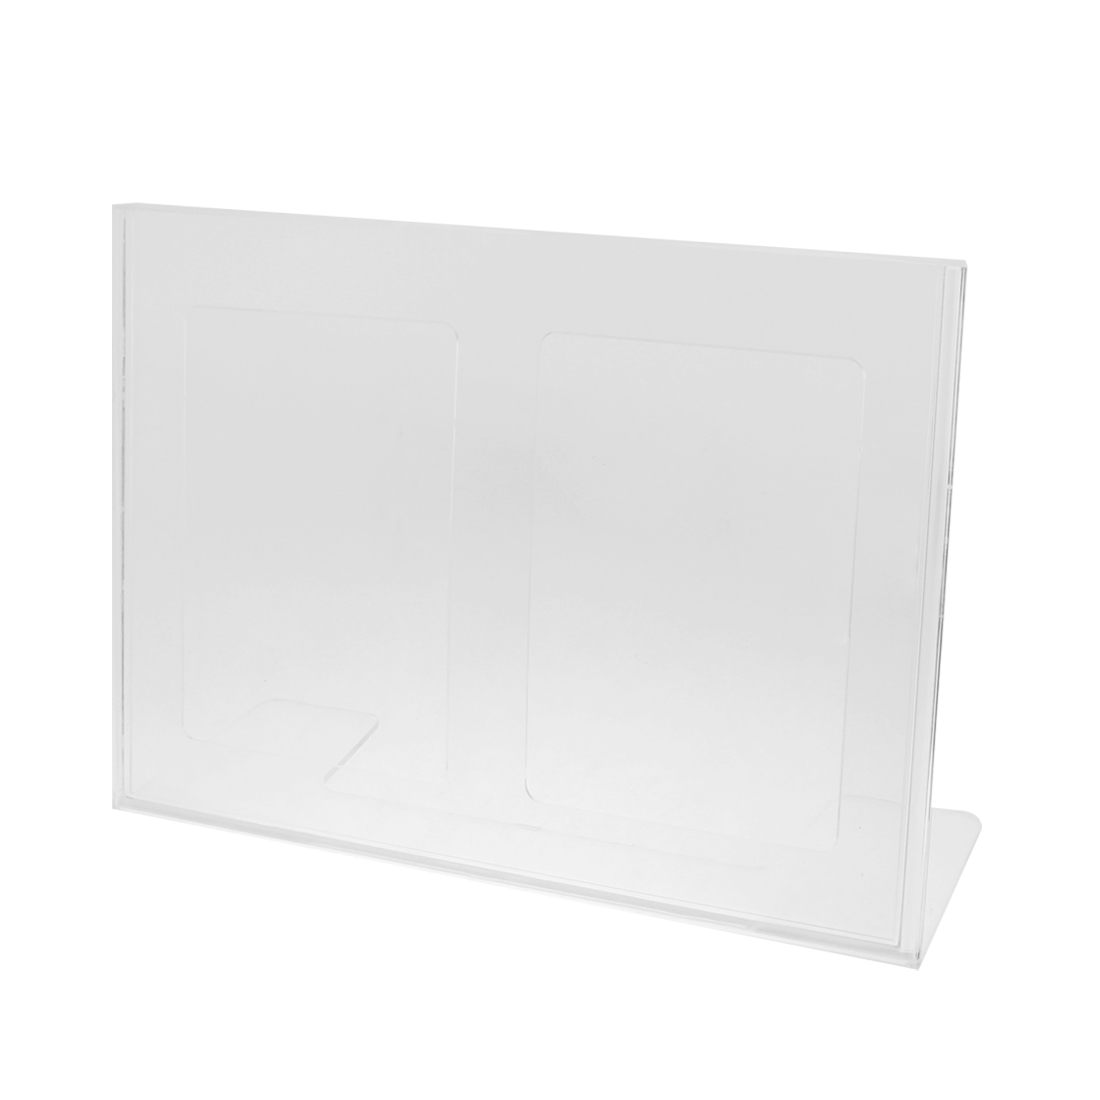 Clear Plastic Horizontal L-Shape Business Card Holder Display Stand